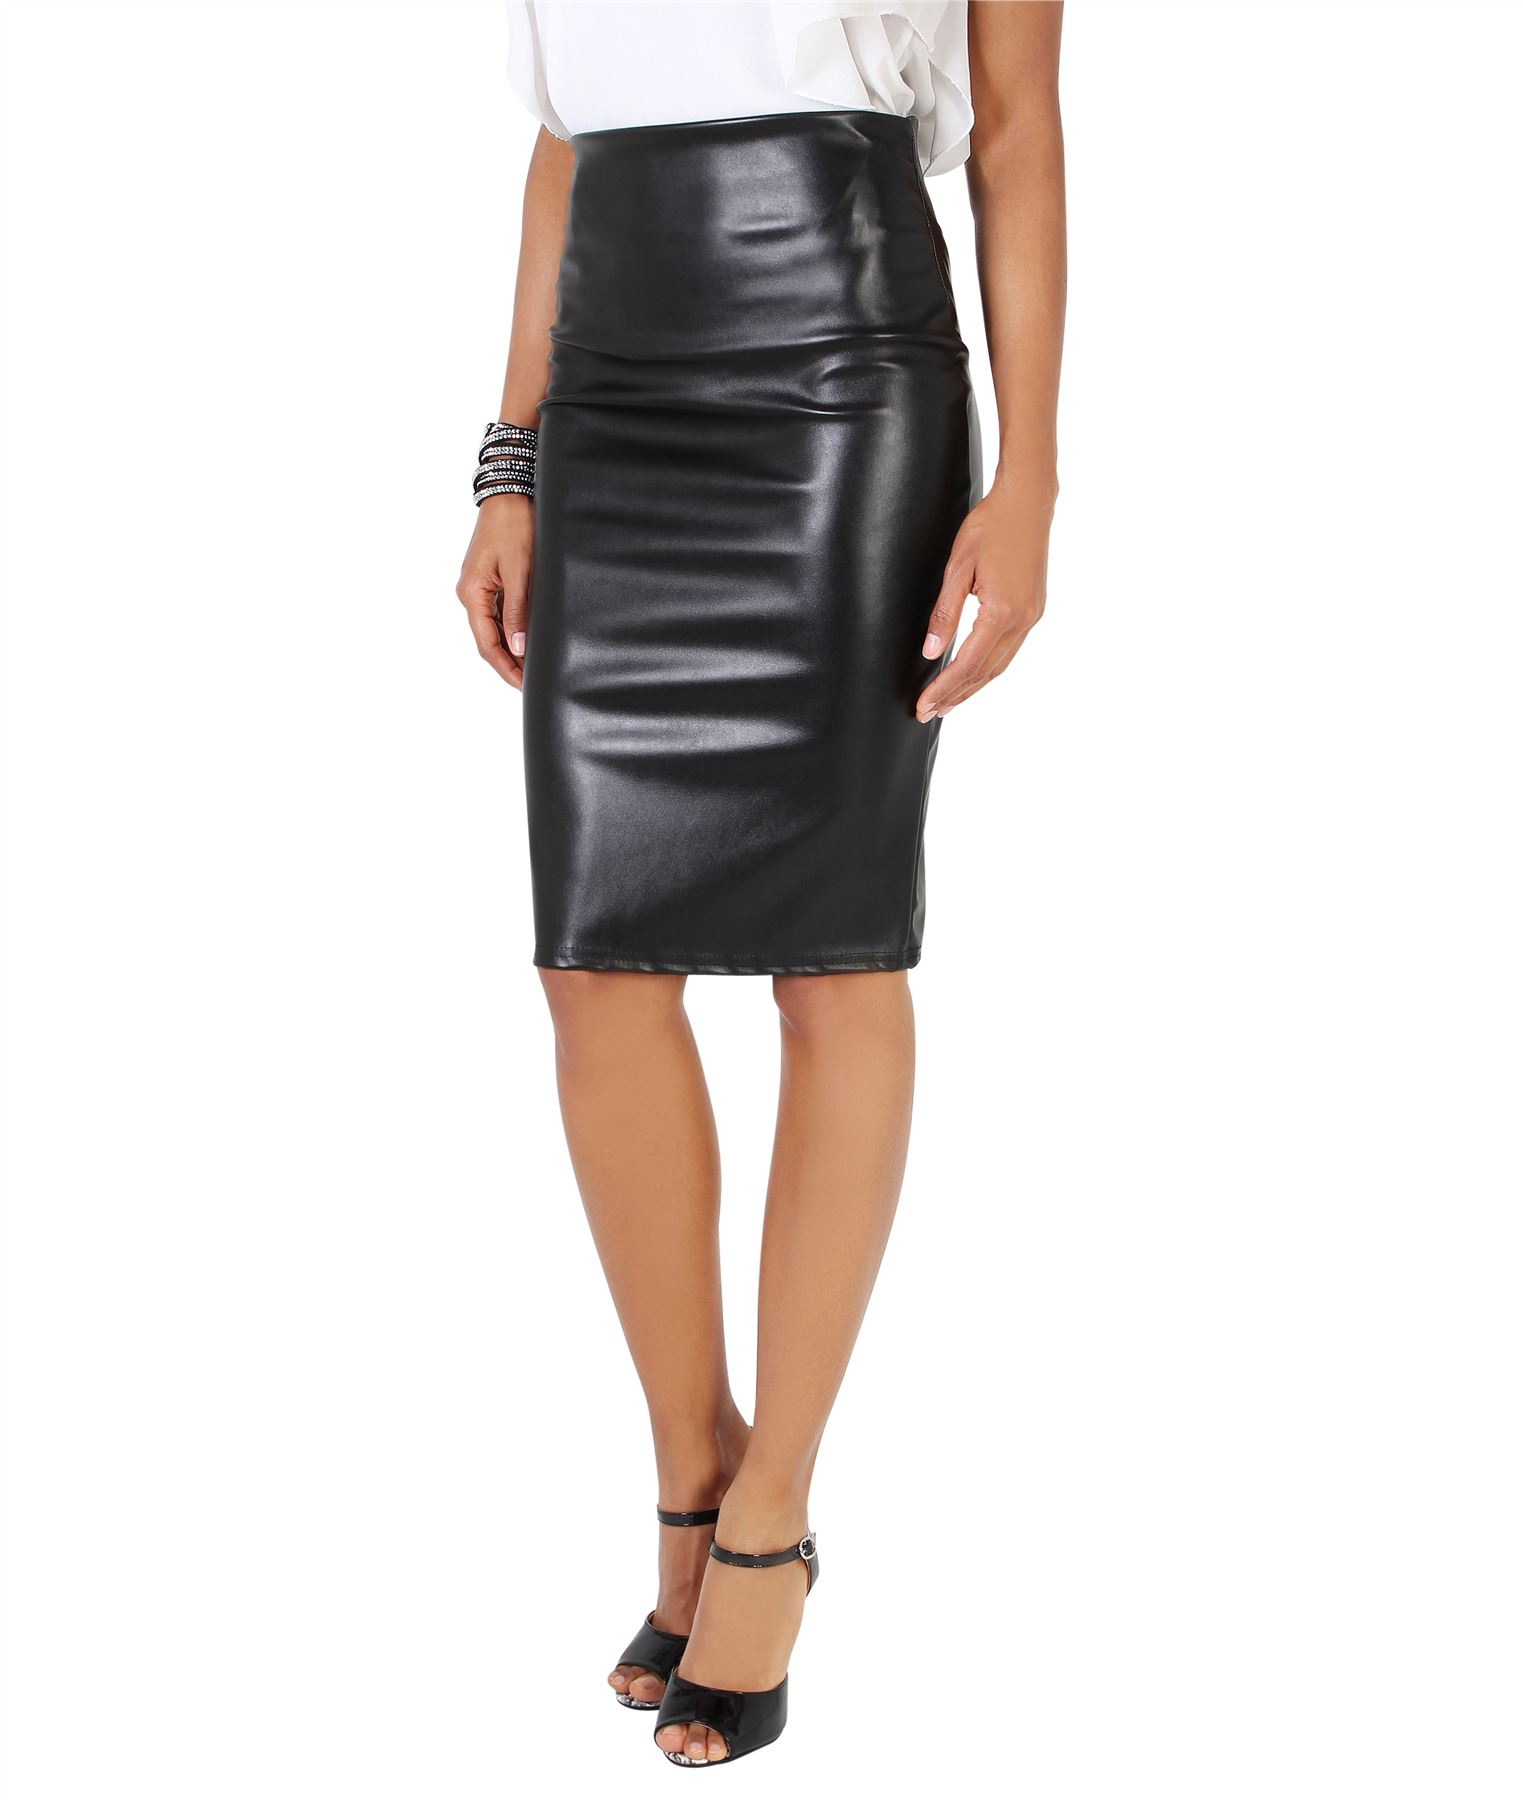 Womens-Ladies-Leather-Pencil-Skirt-Sexy-Wet-Look-Stretch-PU-Mini-Midi-Bodycon thumbnail 10